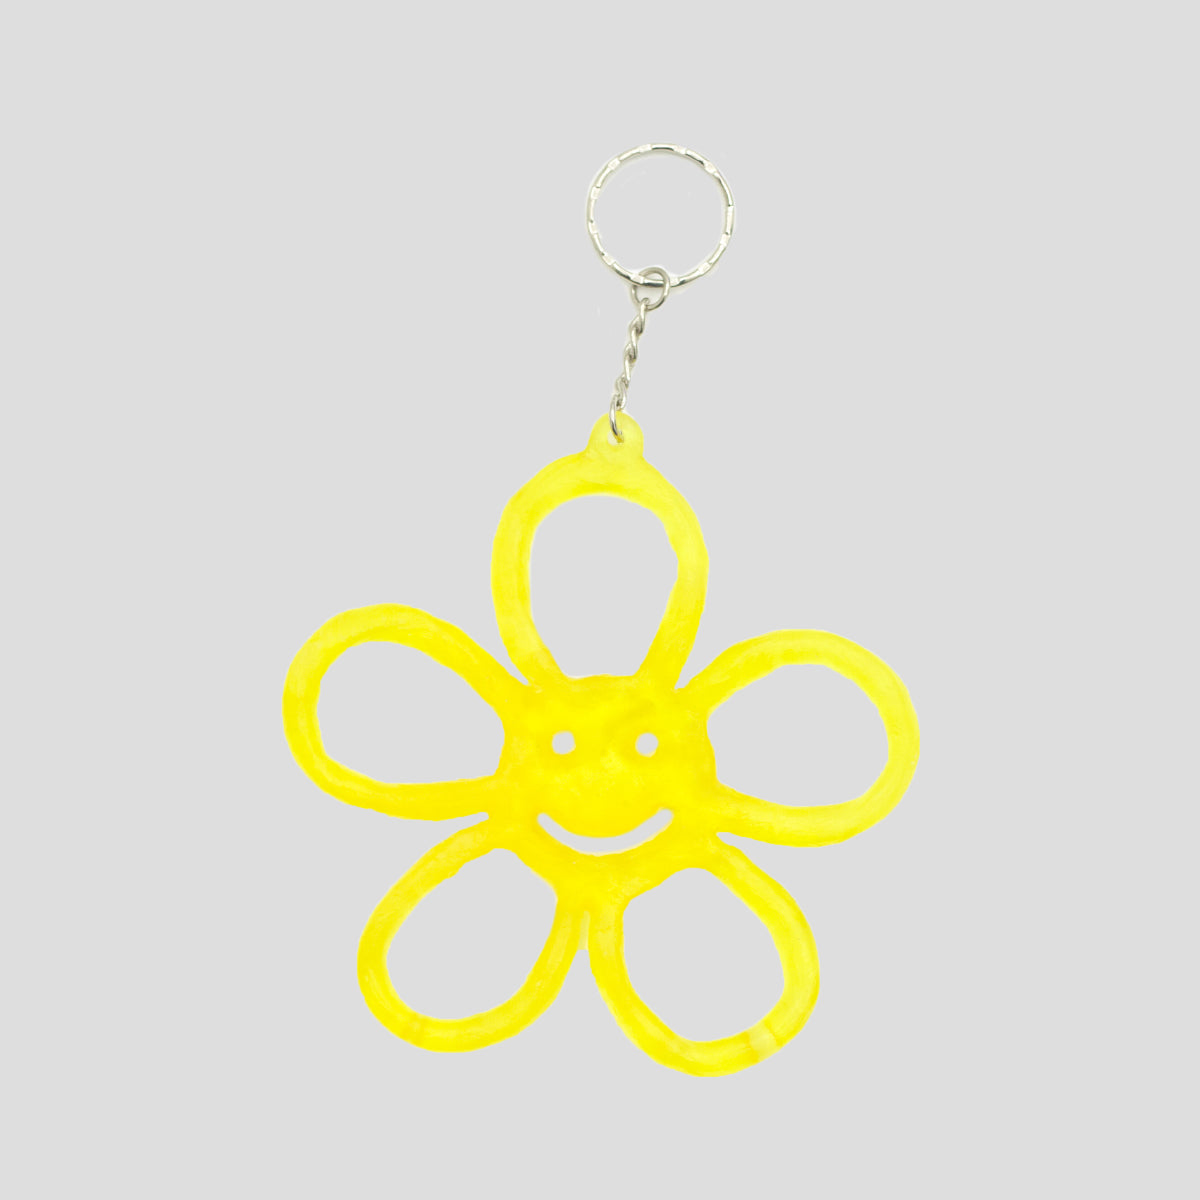 HAPPY FLOWER KEYRING TRANSLUCENT YELLOW